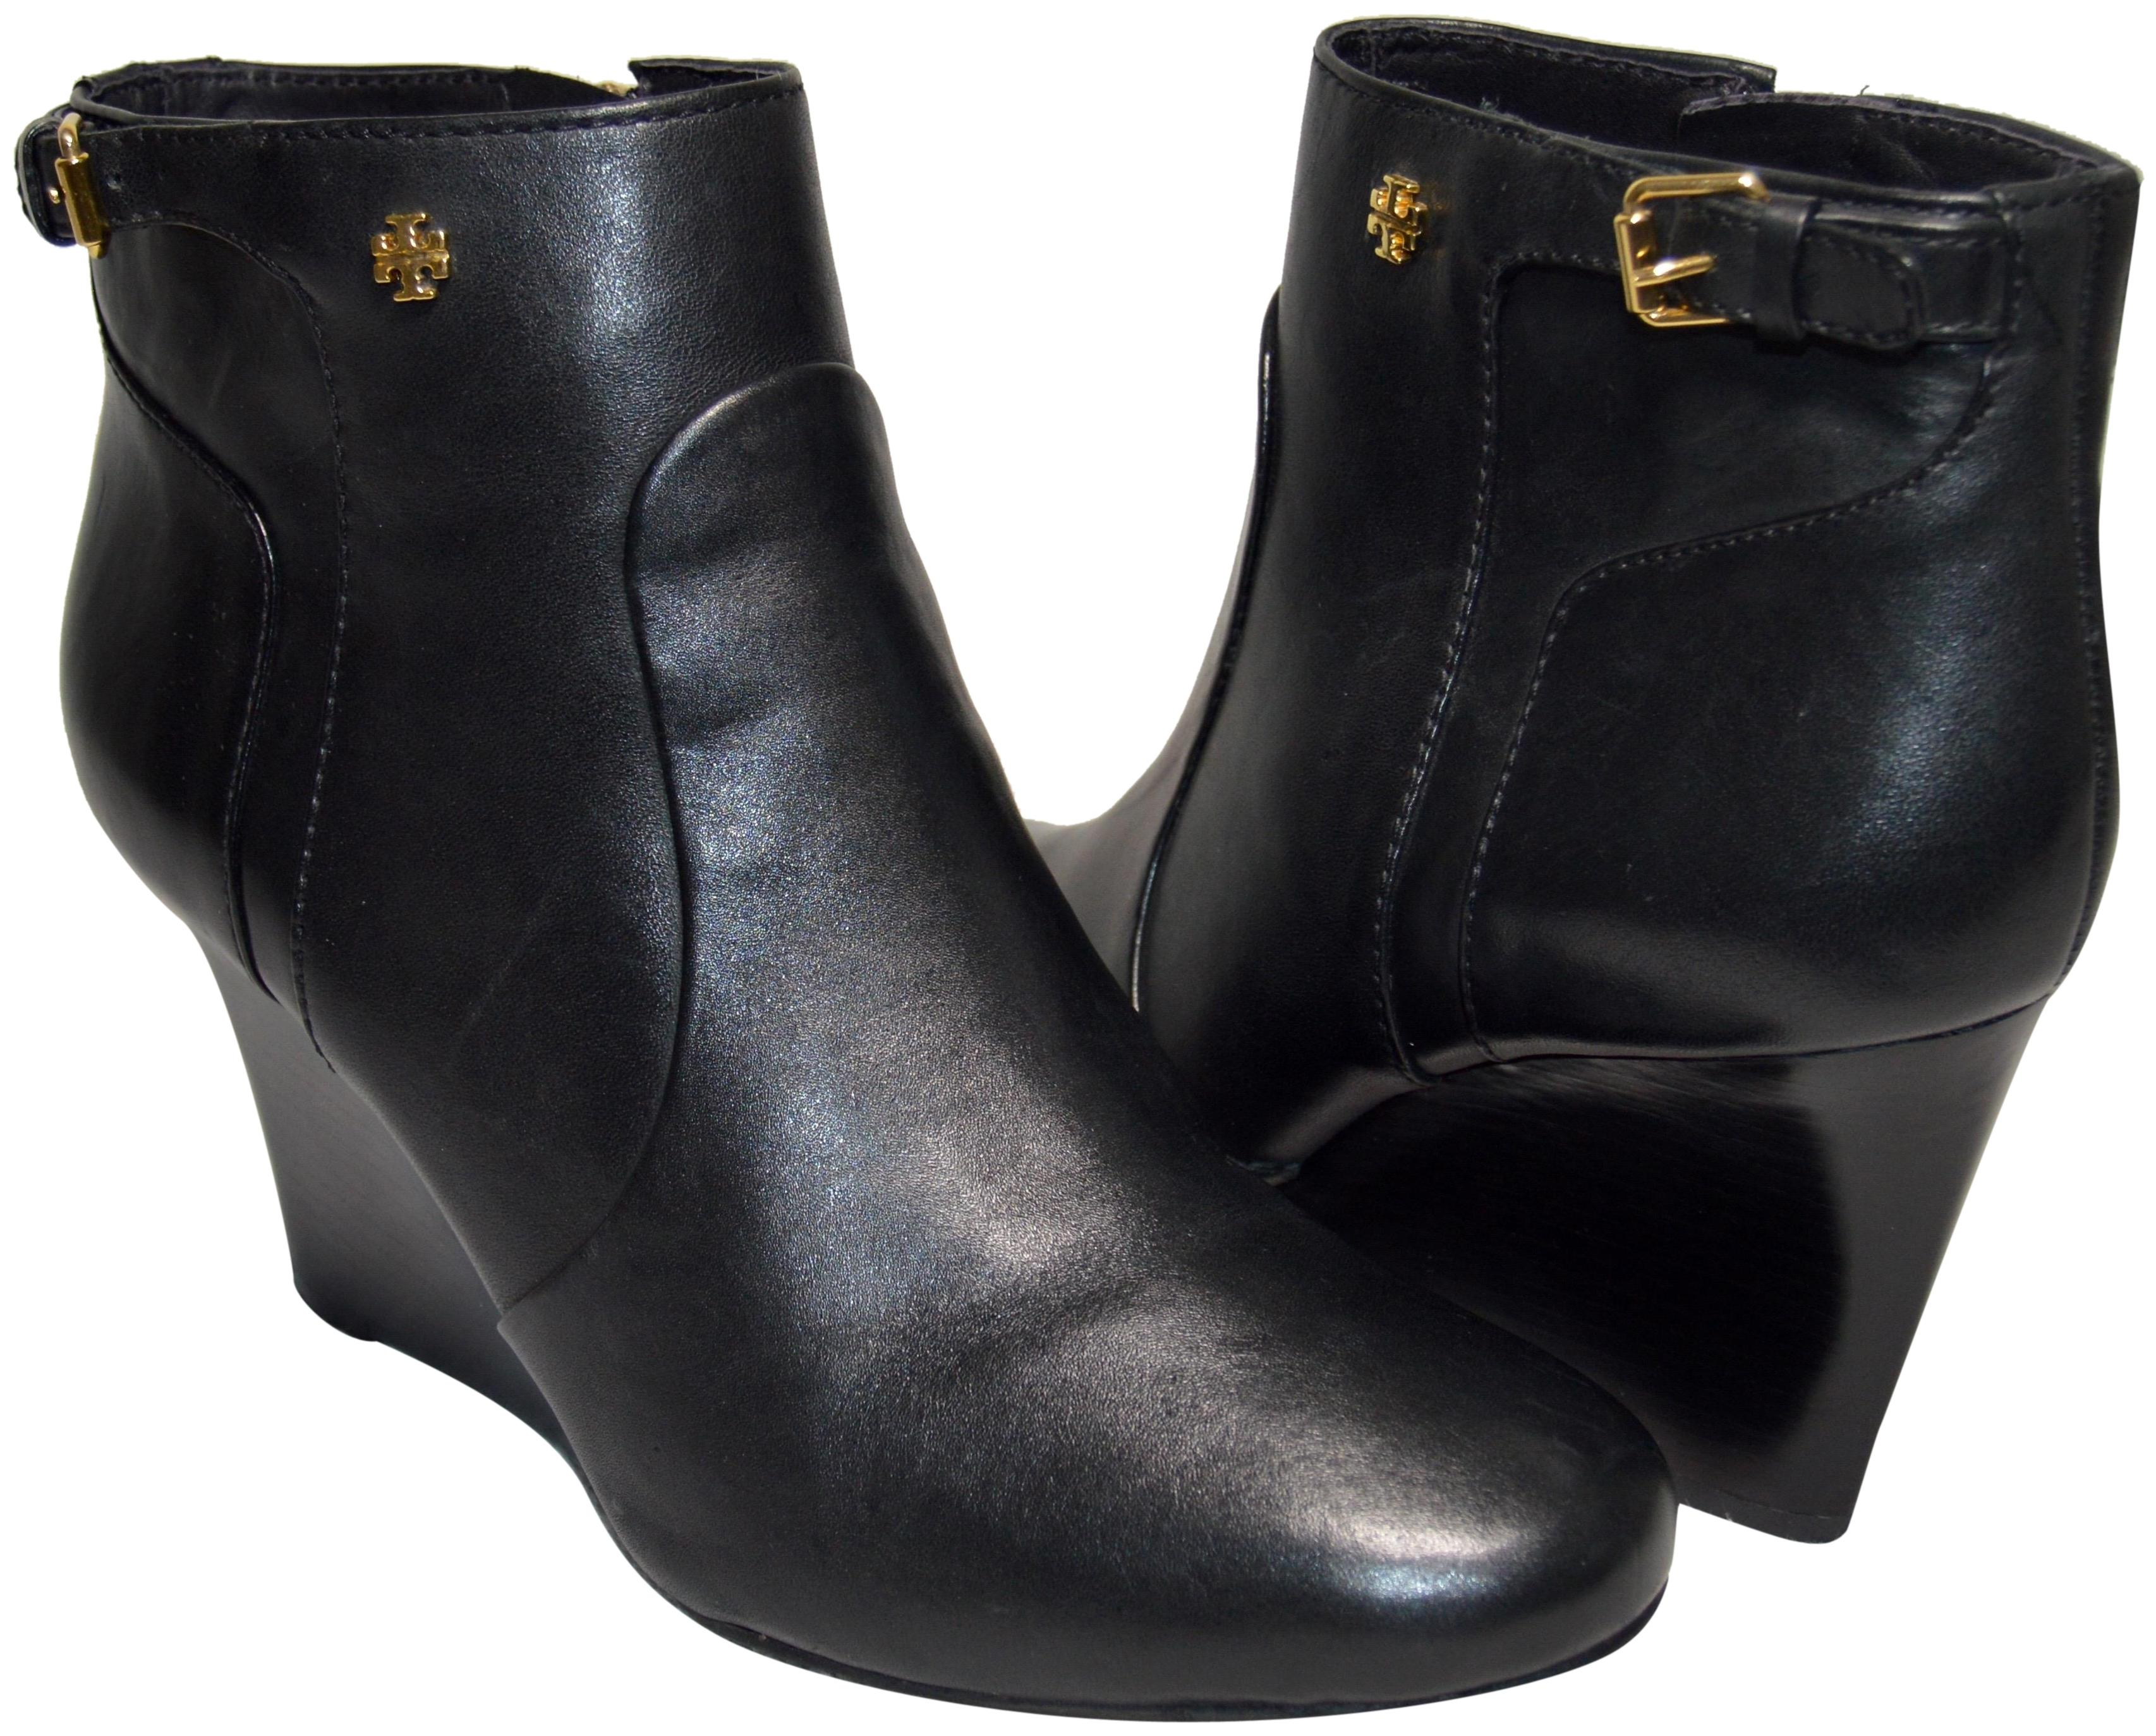 87c8f3f48a4 Tory Burch Black Milan 85mm Wedge Equestrian Calf Calf Calf Leather  Boots Booties Size US 10.5 Regular (M